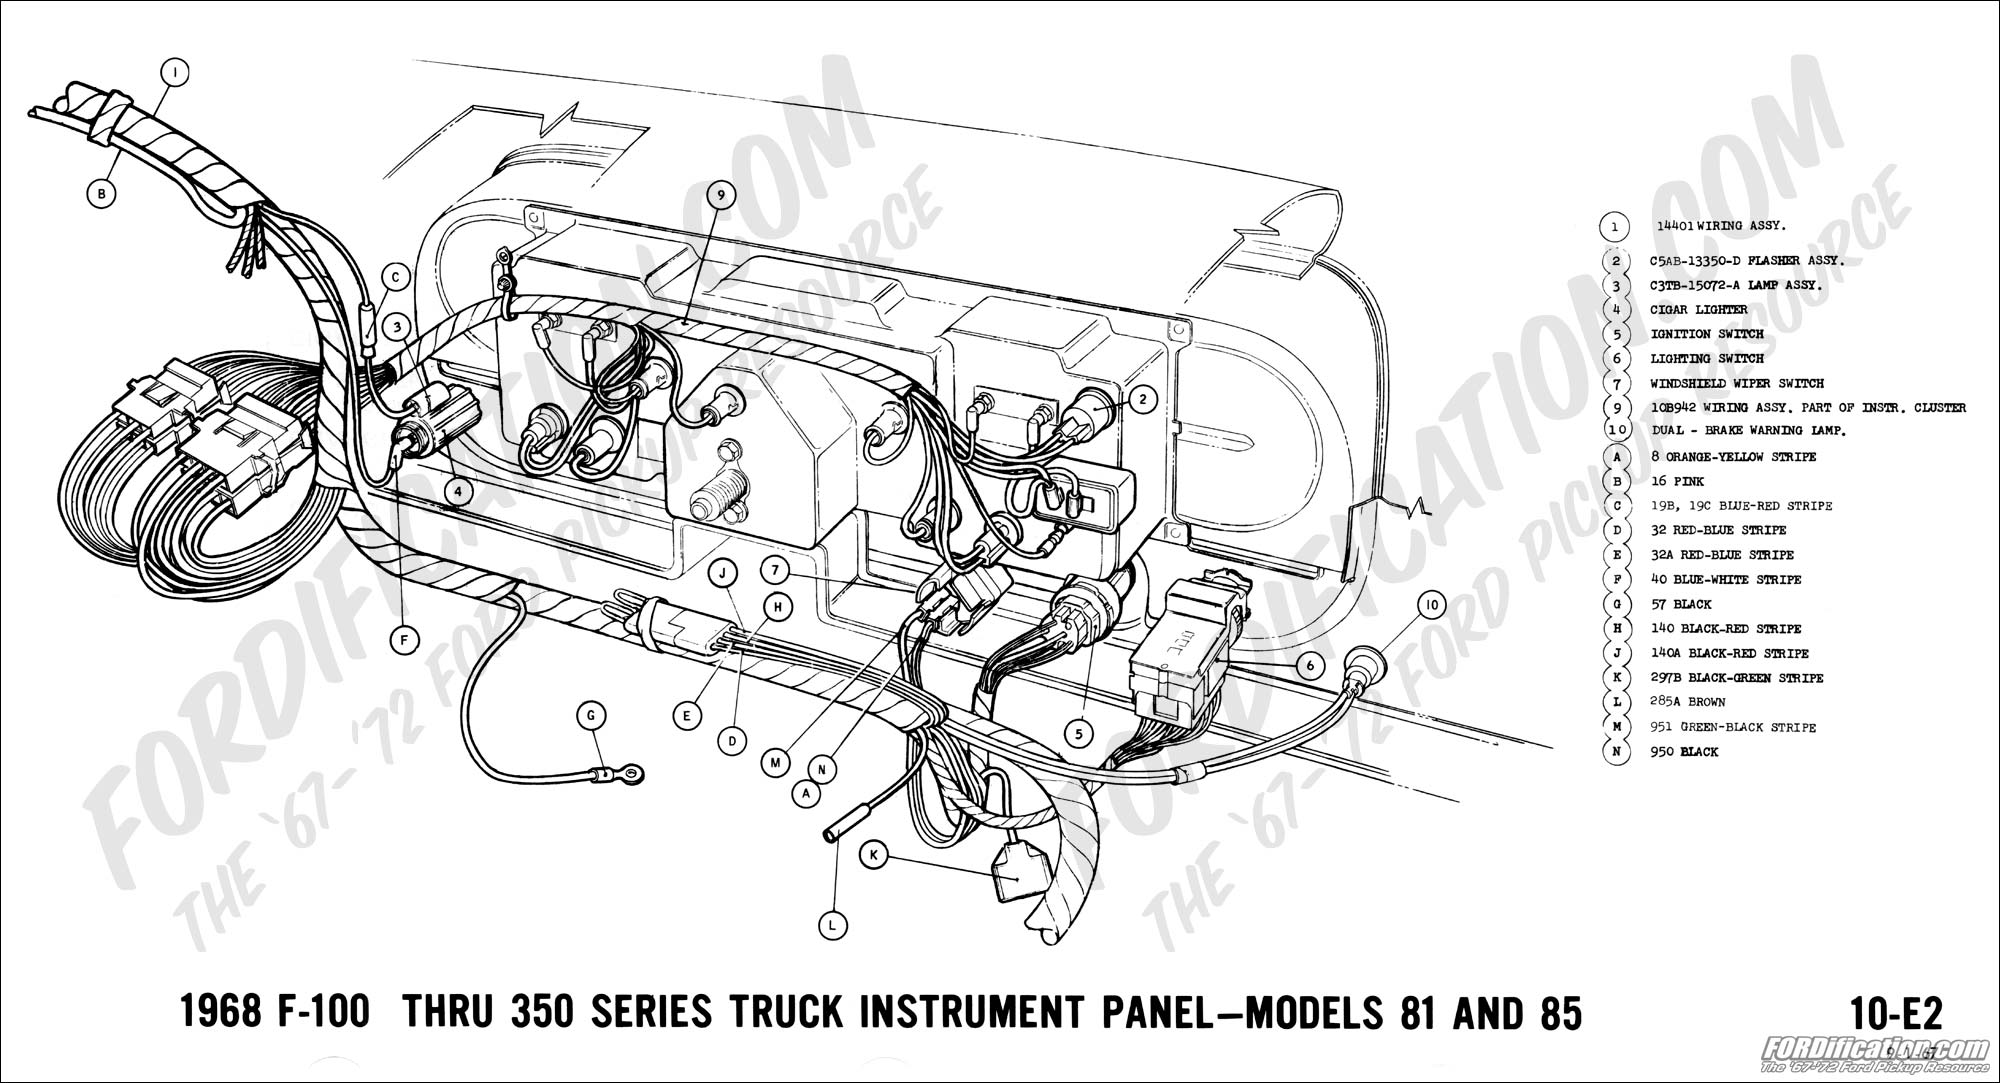 68 Ford 302 Engine Diagram Free Download Modern Design Of Wiring 1972 Mustang 1969 Library Rh 93 Boptions1 De 1970